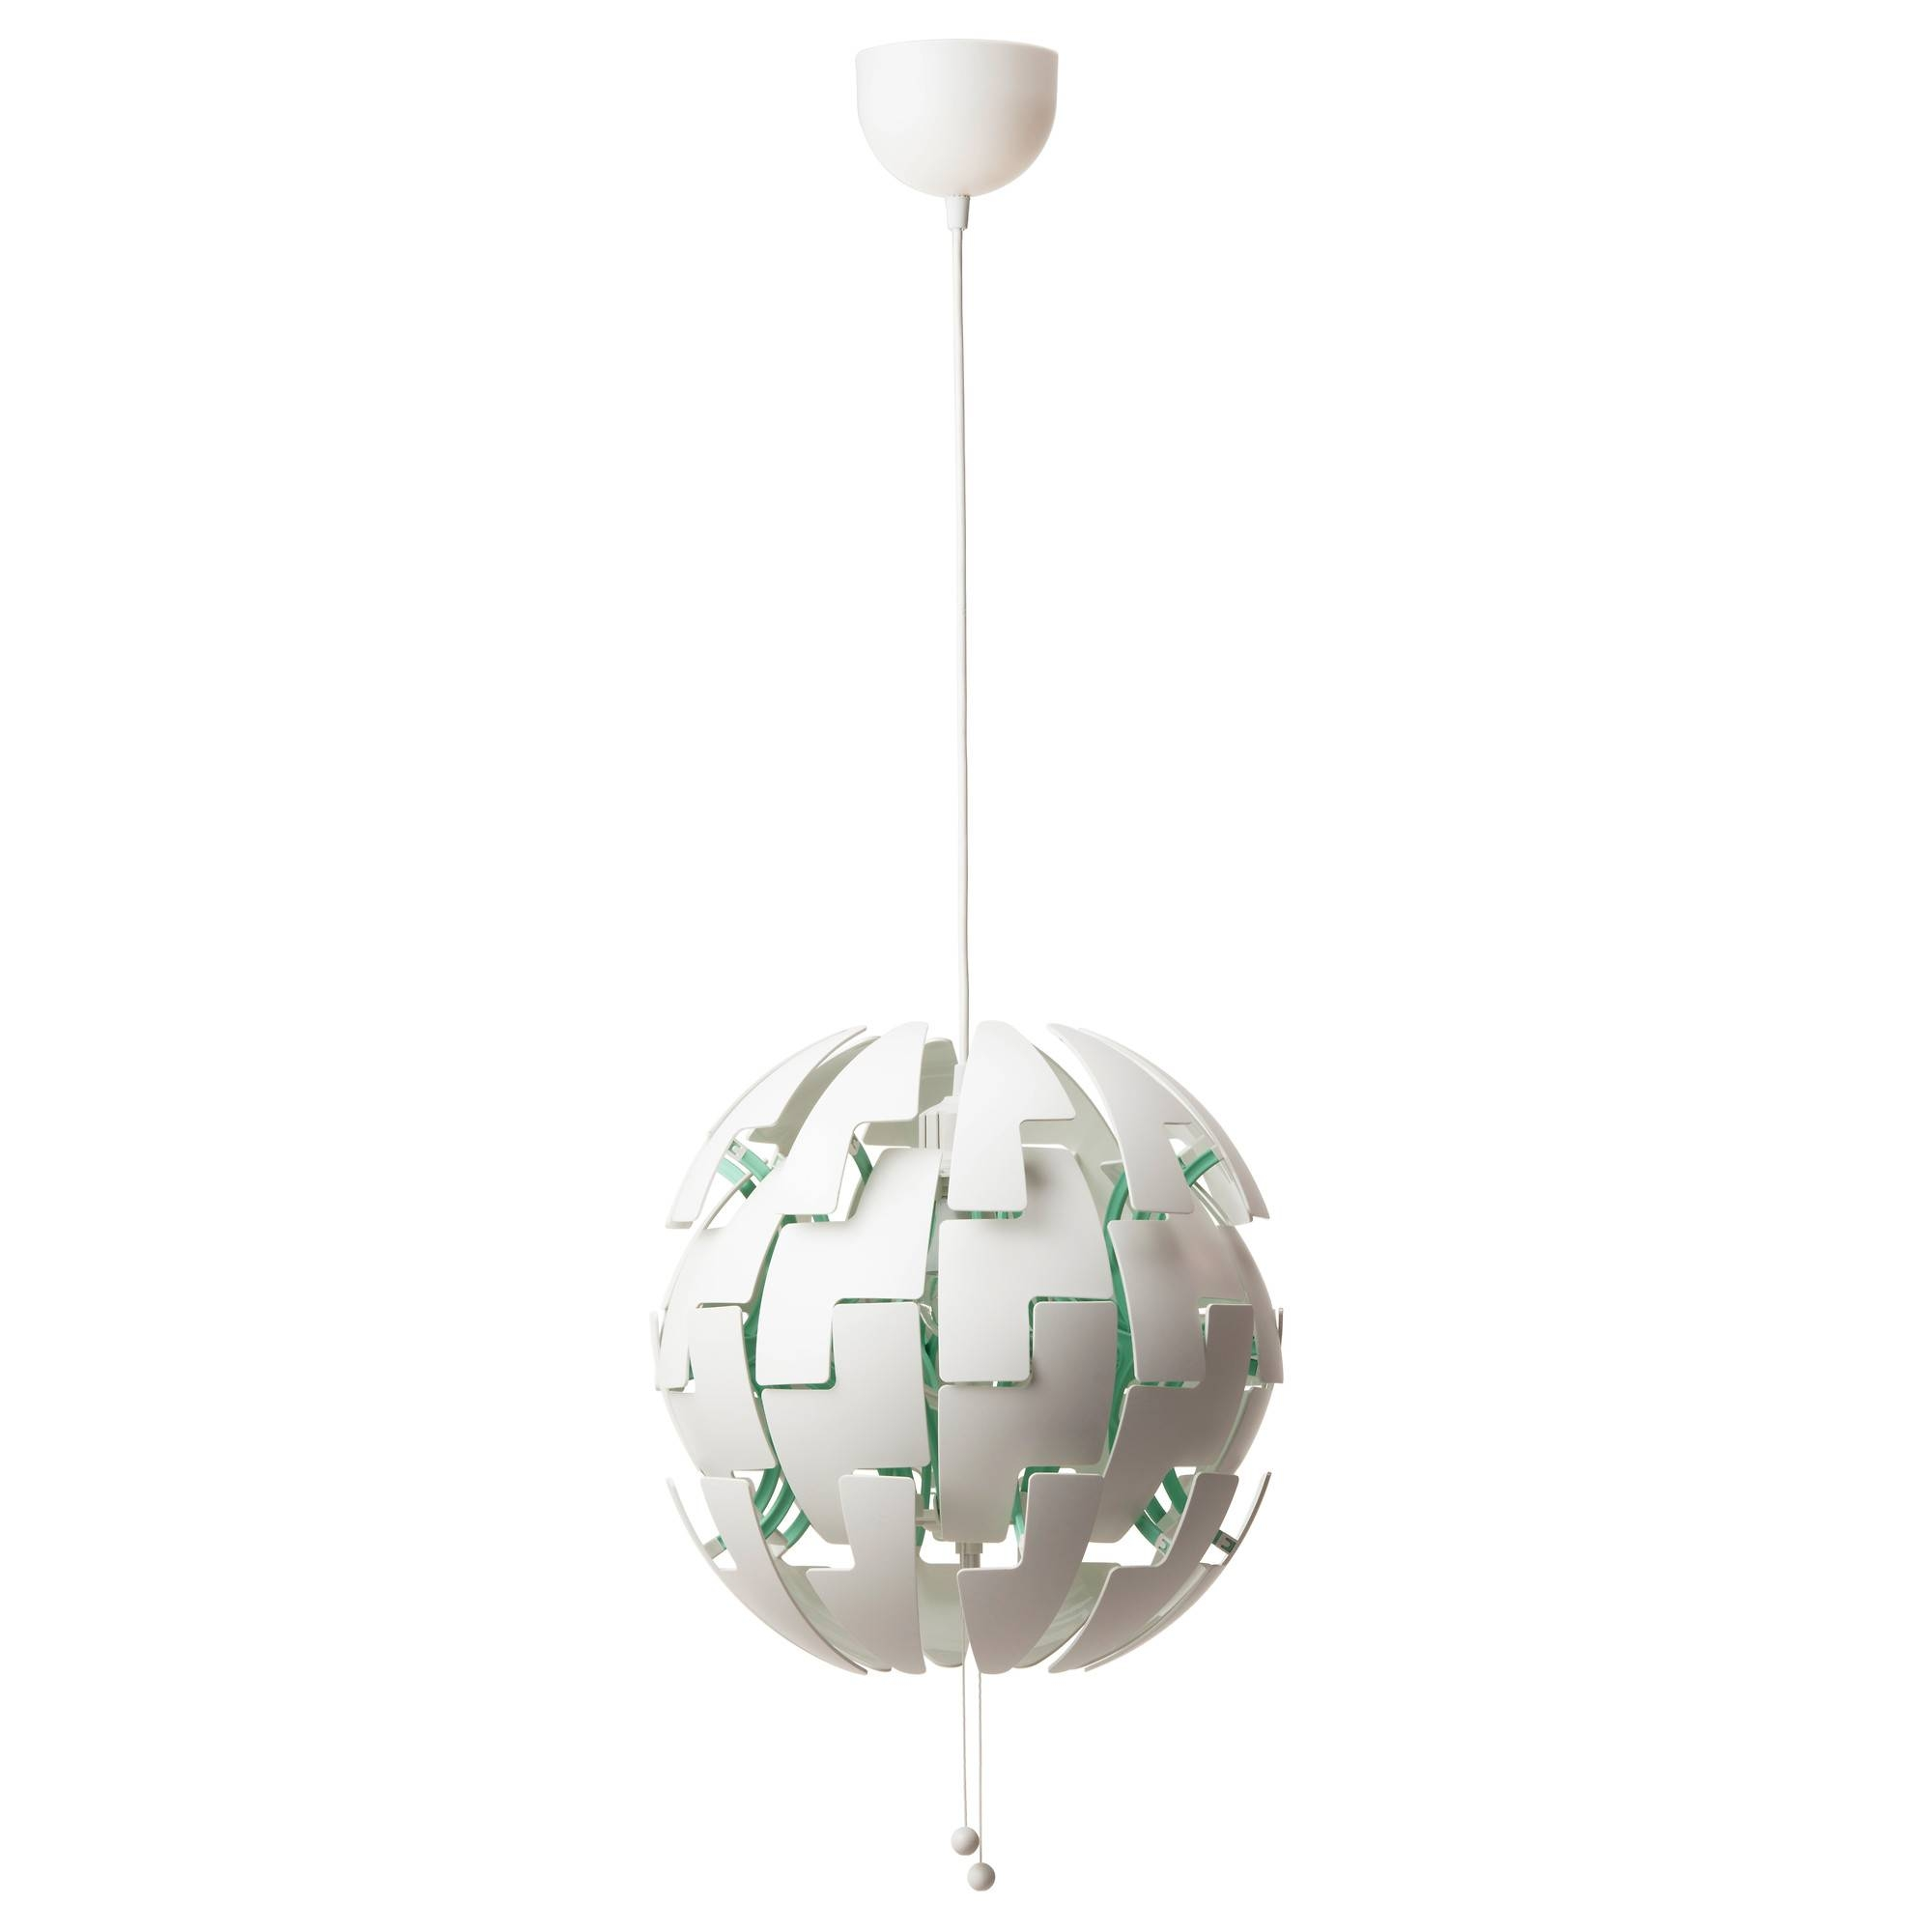 Ikea Ps 2014 Pendant Lamp White/turquoise – Ikea Inside Ikea Globe Lights (View 9 of 15)